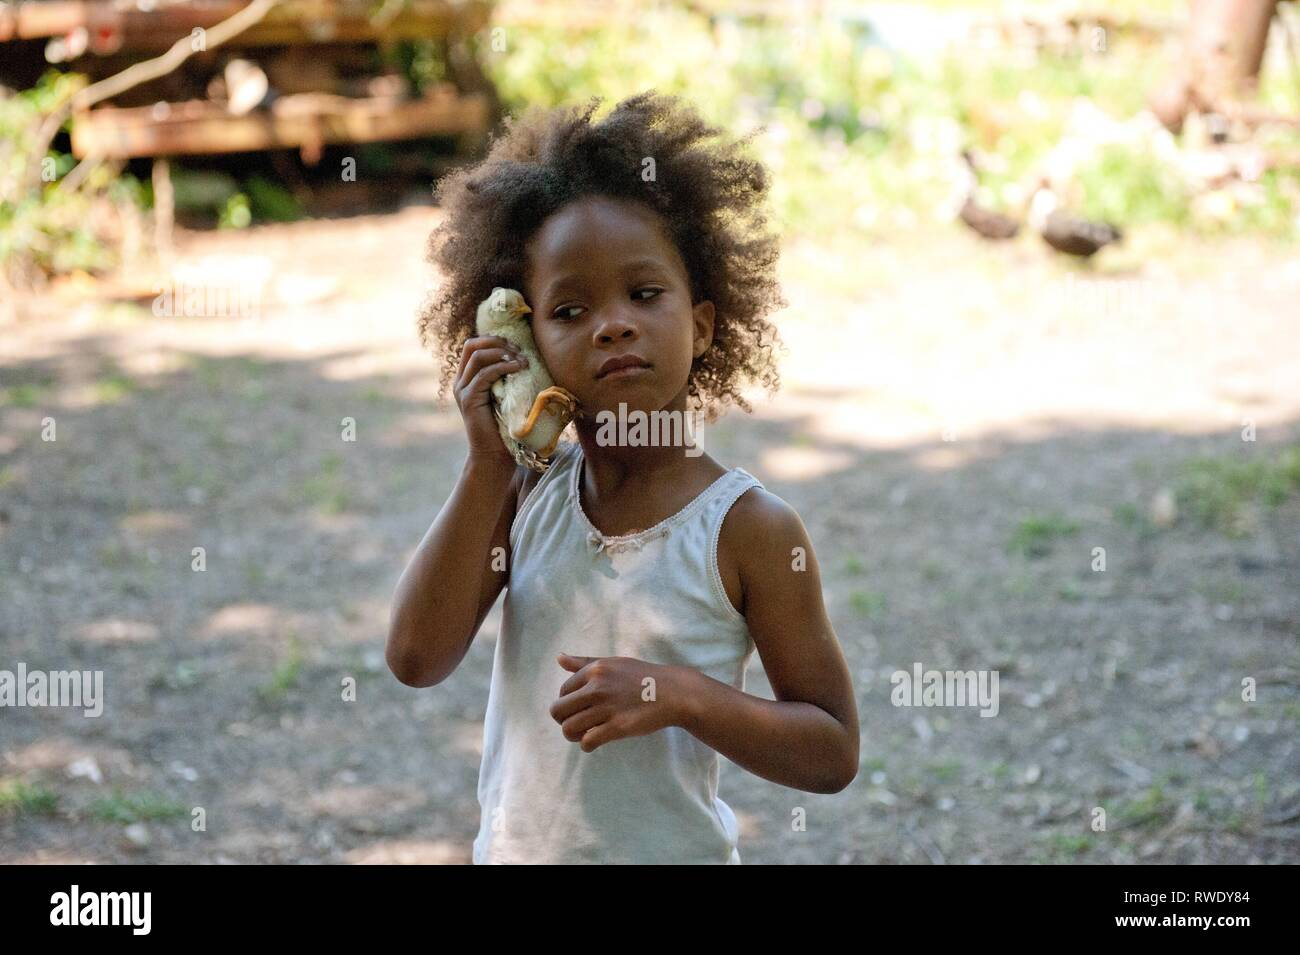 QUVENZHANE WALLIS, BEASTS OF THE SOUTHERN WILD, 2012 - Stock Image